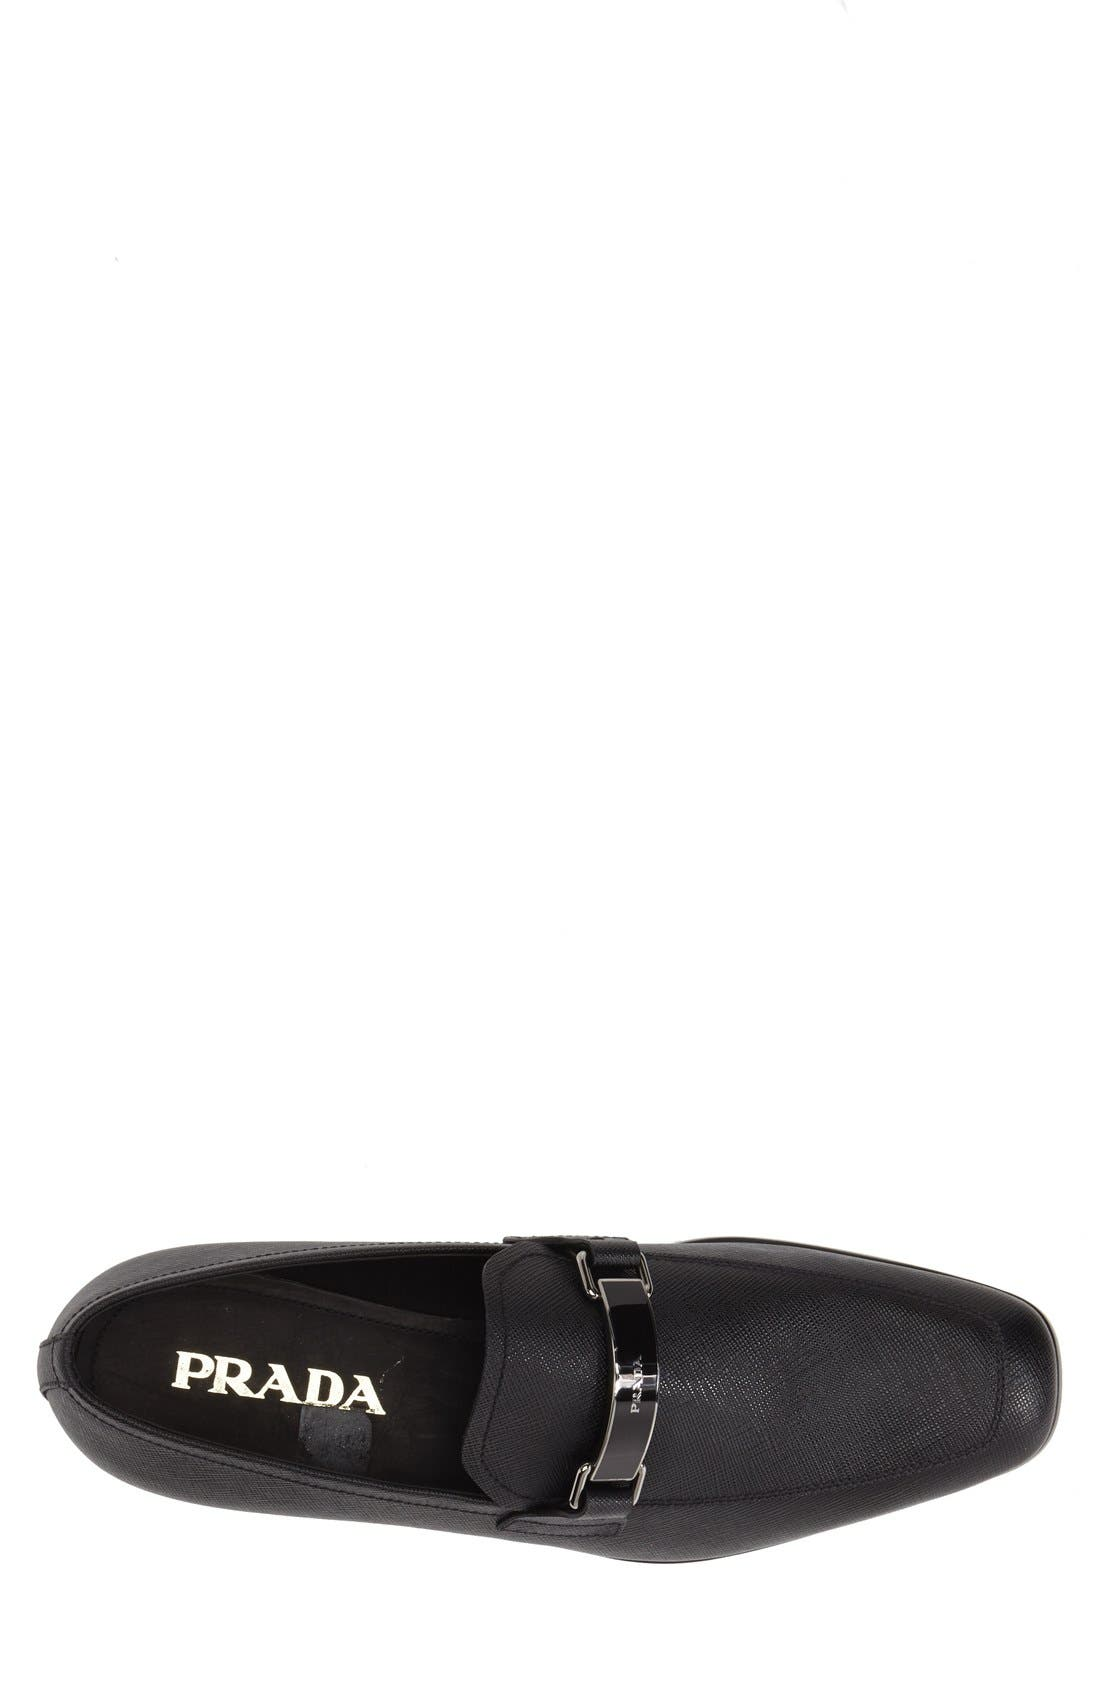 PRADA, Saffiano Leather Bit Loafer, Alternate thumbnail 3, color, NERO LEATHER